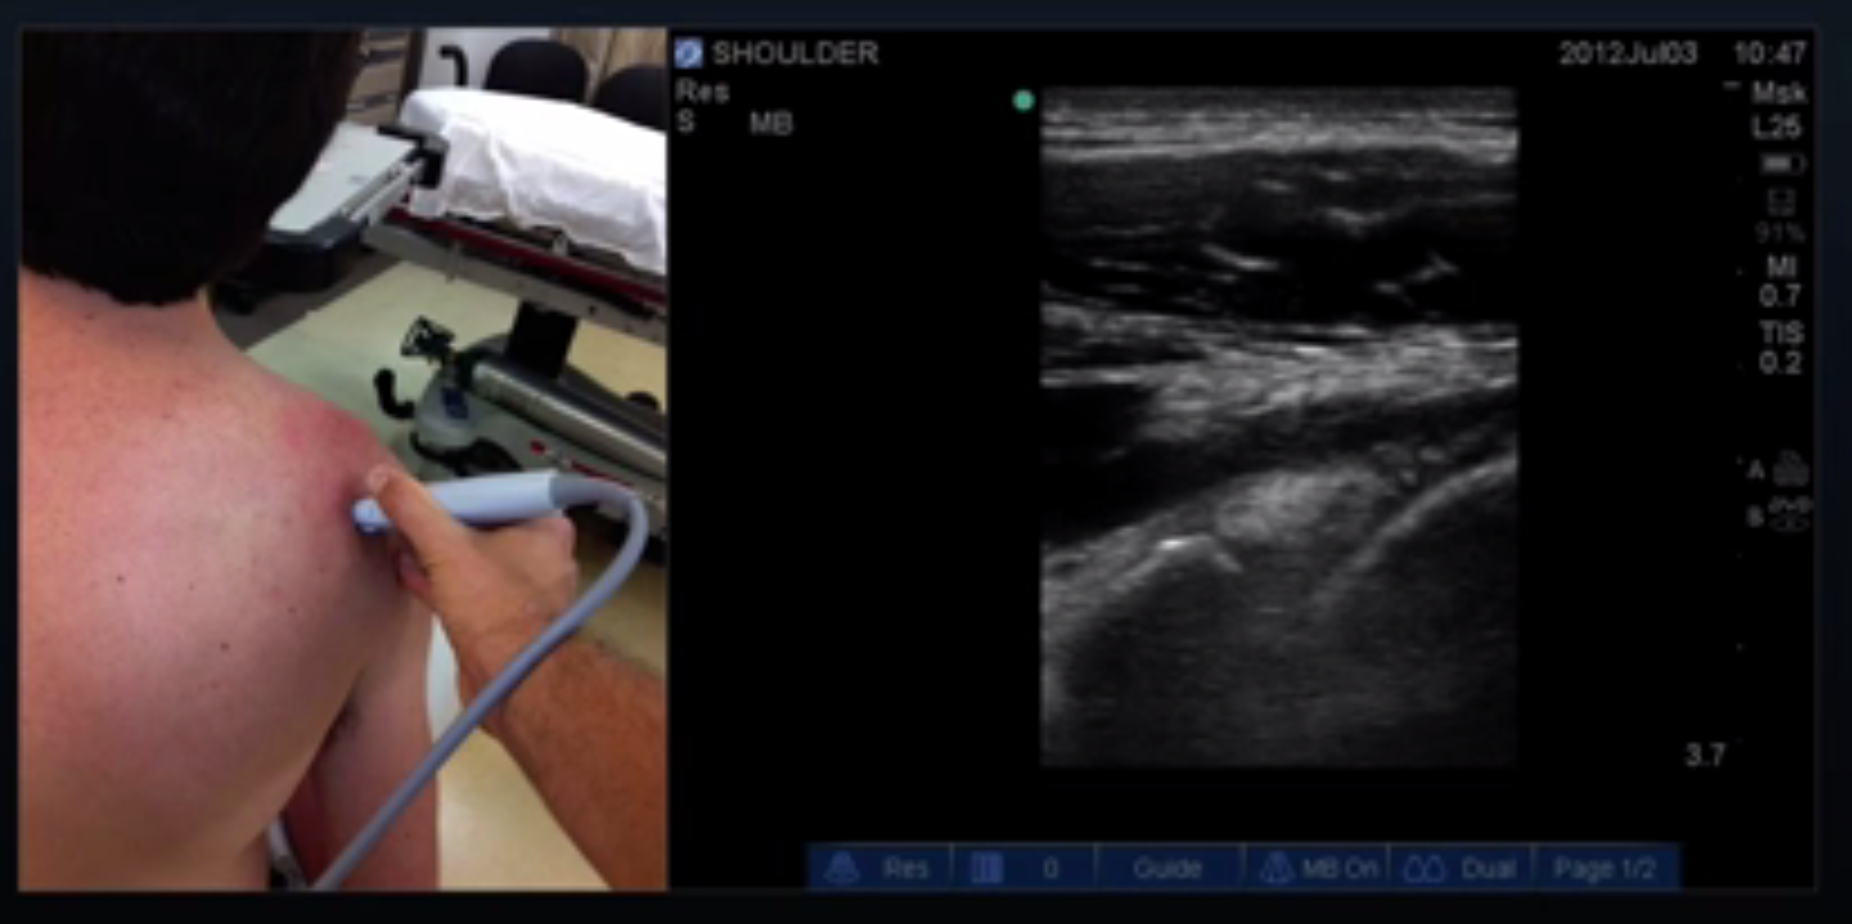 Proper Probe Location for Infraspinatus Tendon Long Axis View